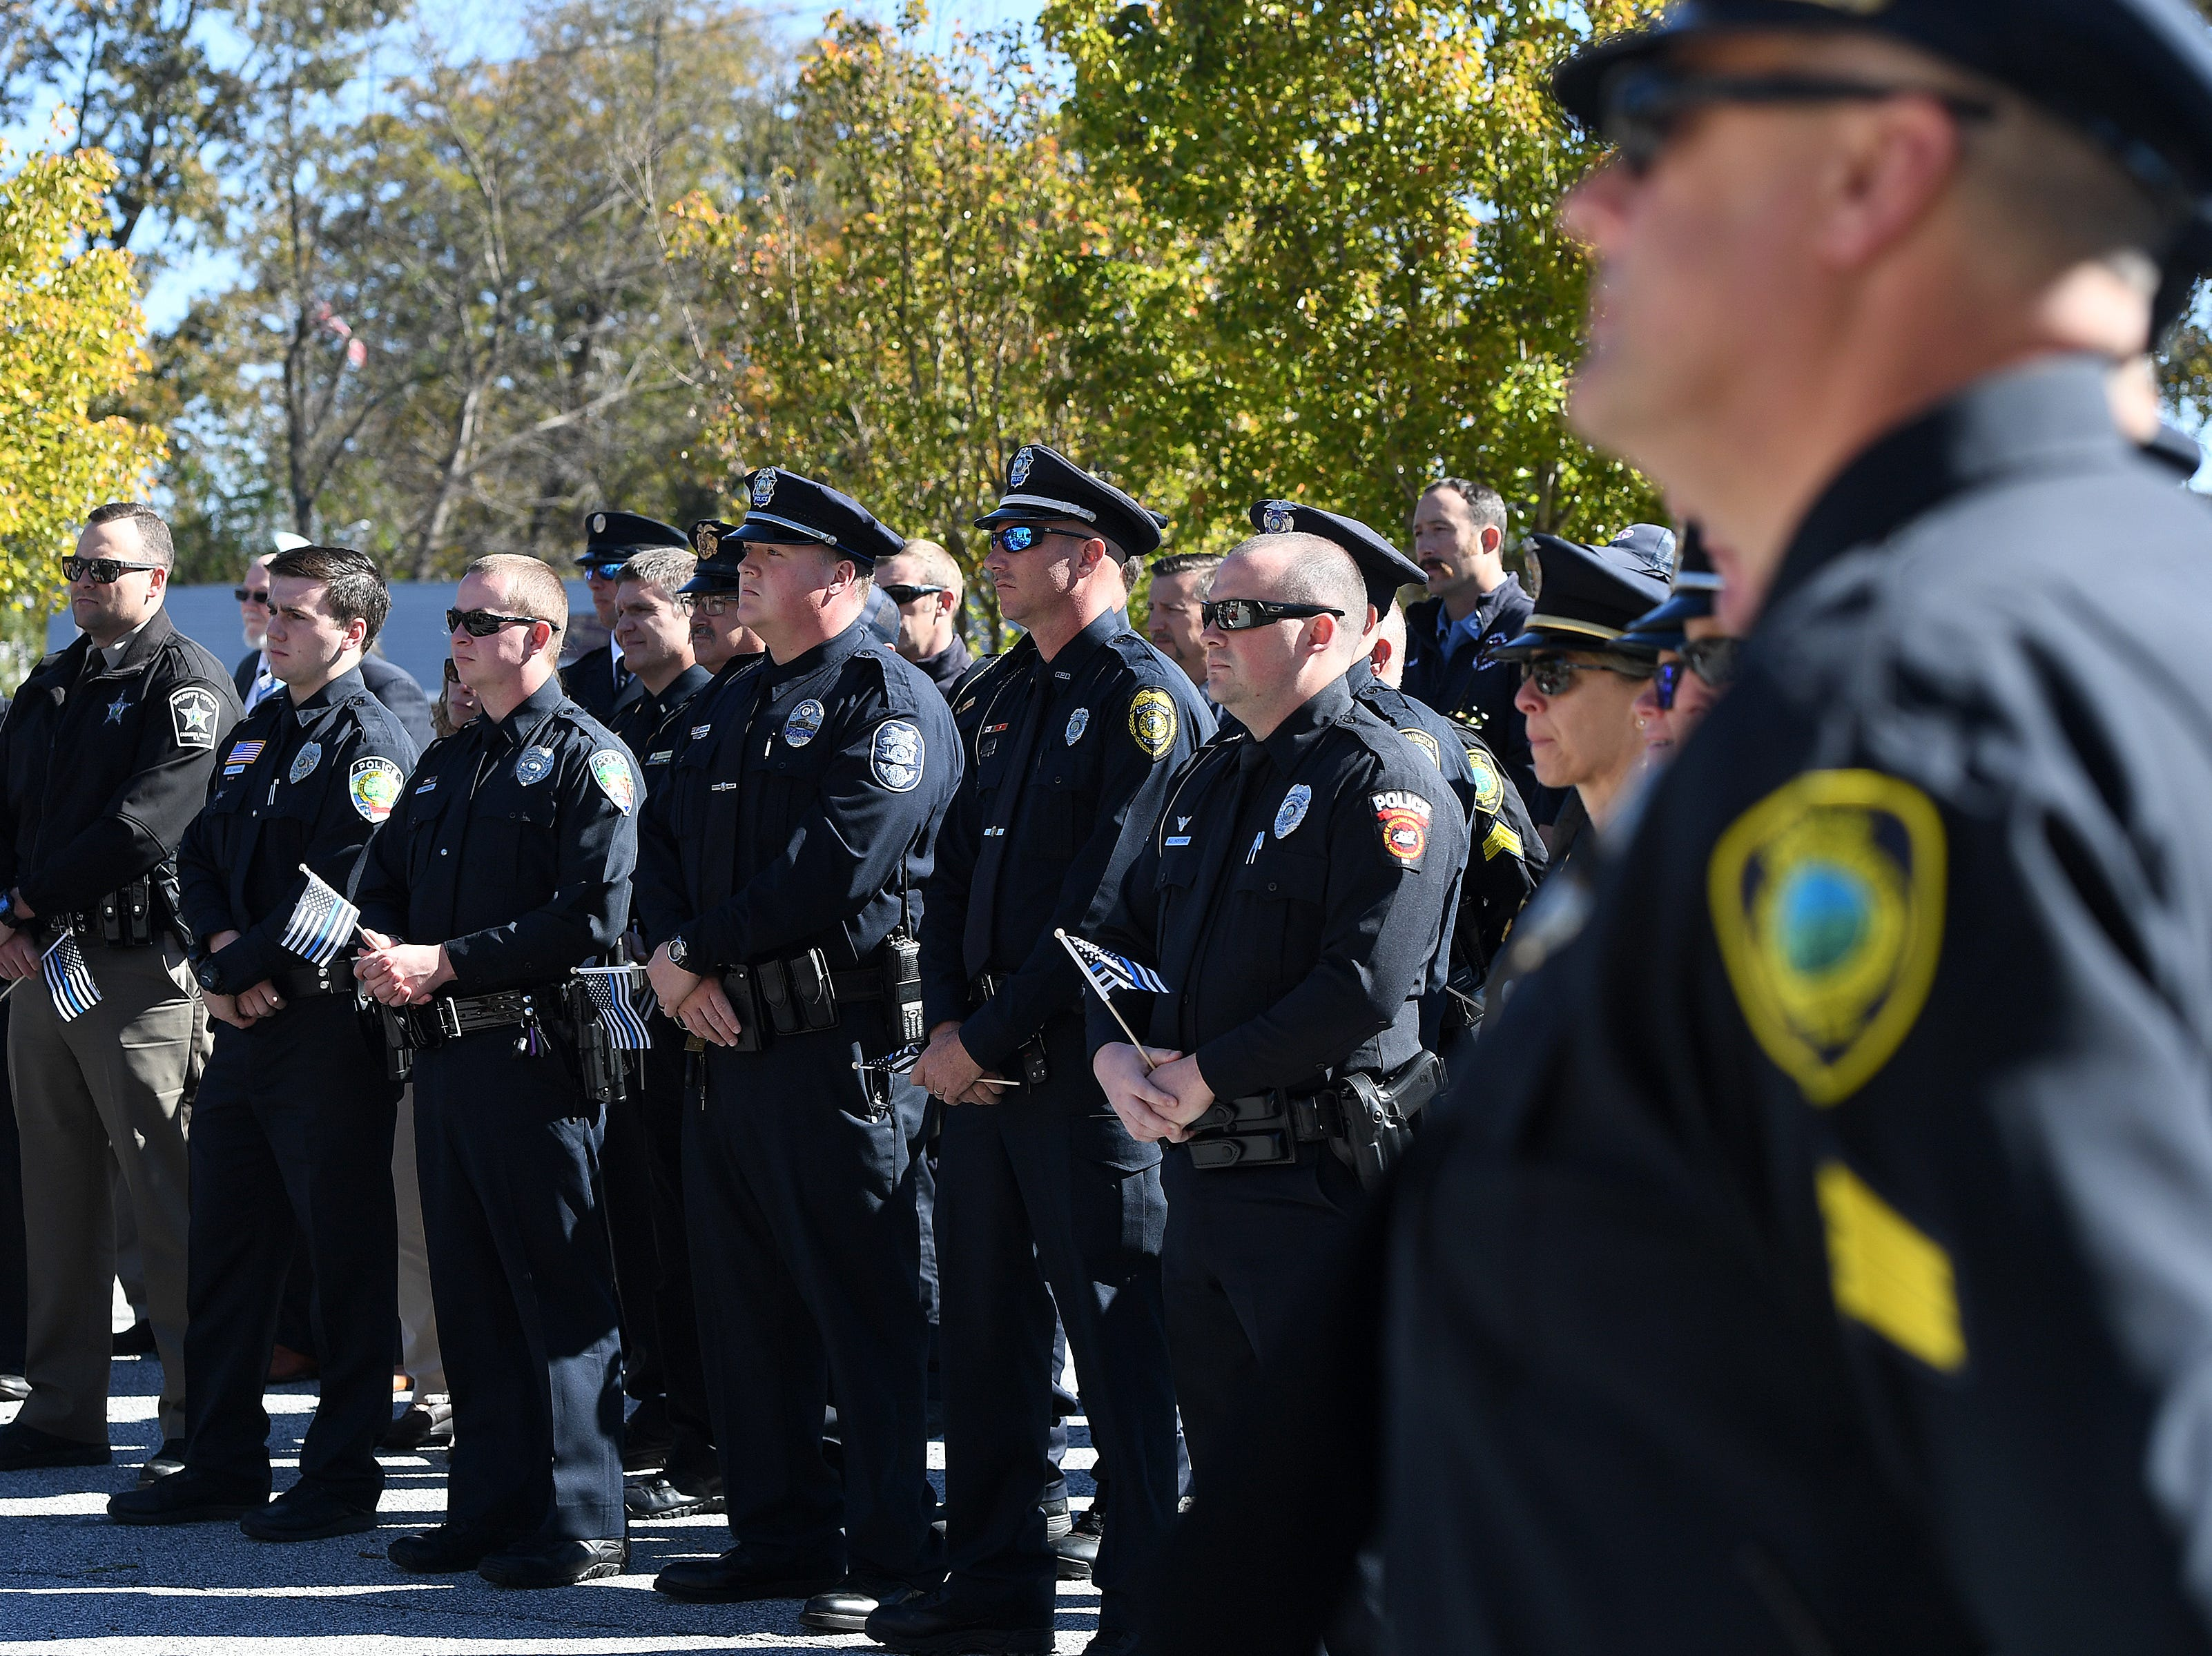 Officers from the Asheville Police Department and other city departments attend a ceremony to dedicate a portion of Old Haywood Road to Asheville police officer Robert Bingaman at the Traffic Safety Office on the five-year-anniversary of his death on Oct. 29, 2018.